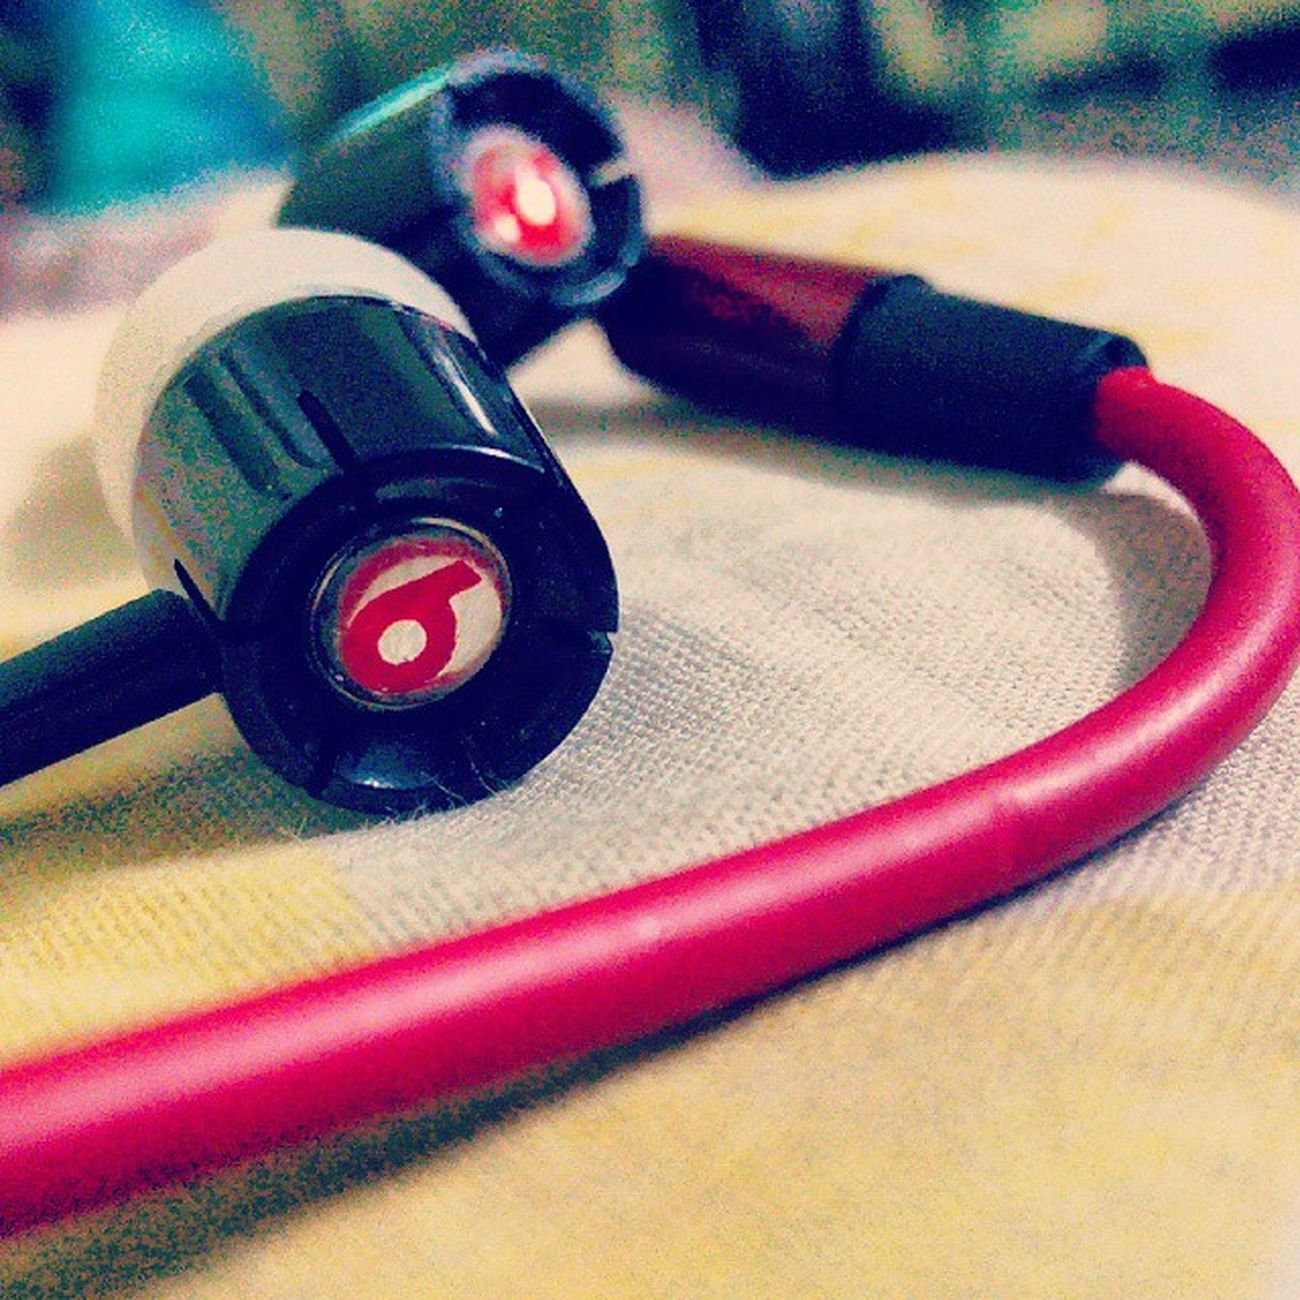 My favourite earpieces Bestsong Mica Playlist Goodmusic Nowplaying Iloveyou Listentothis Instalike Soundsapp Lovethissong Songs Triofantastic Lovemoments Ilovemywork Soon Singer  Latinpop Yoladibalmusic Yoladibal Guitarra Piano Eyes Foodporn Sweet Awesome instalove scool instago clouds jj_forum